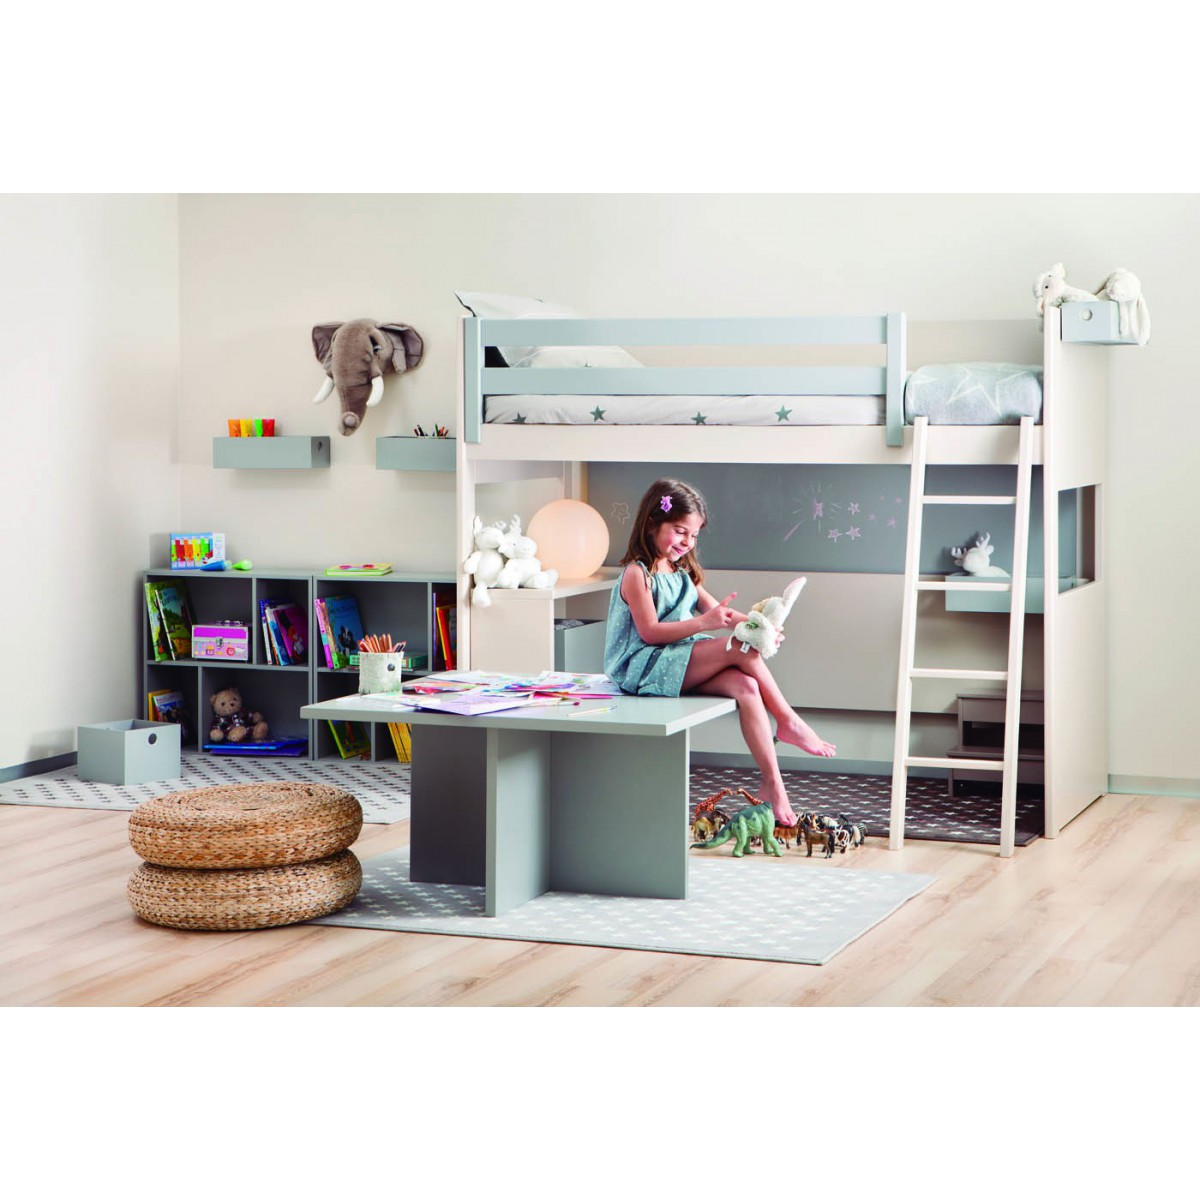 Chambres d 39 enfants design de qualit et volutives for Enfant design